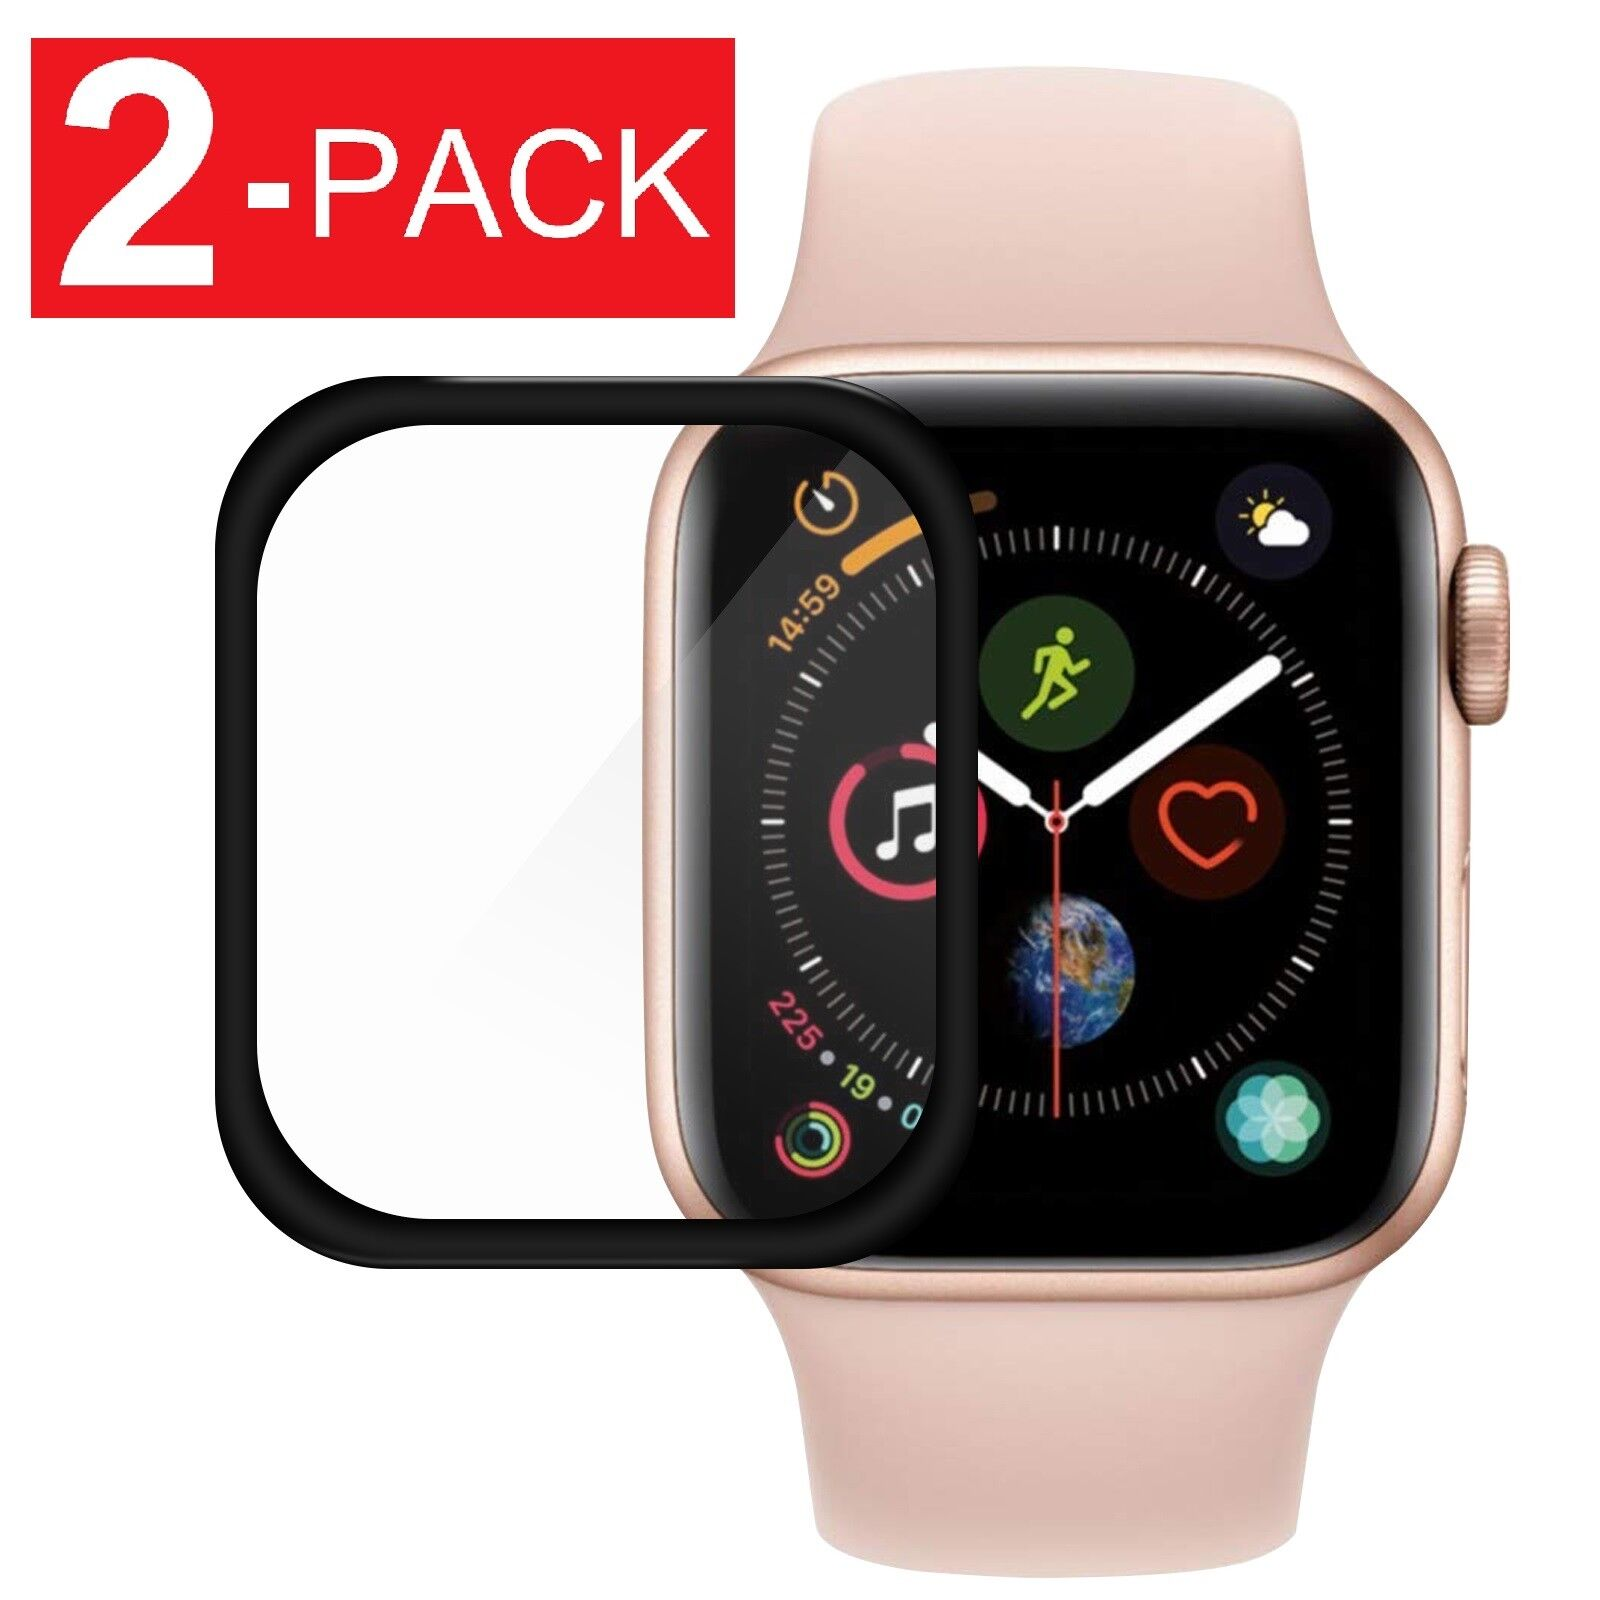 2-Pack For Apple Watch Series 4 40/44mm Full Tempered Glass